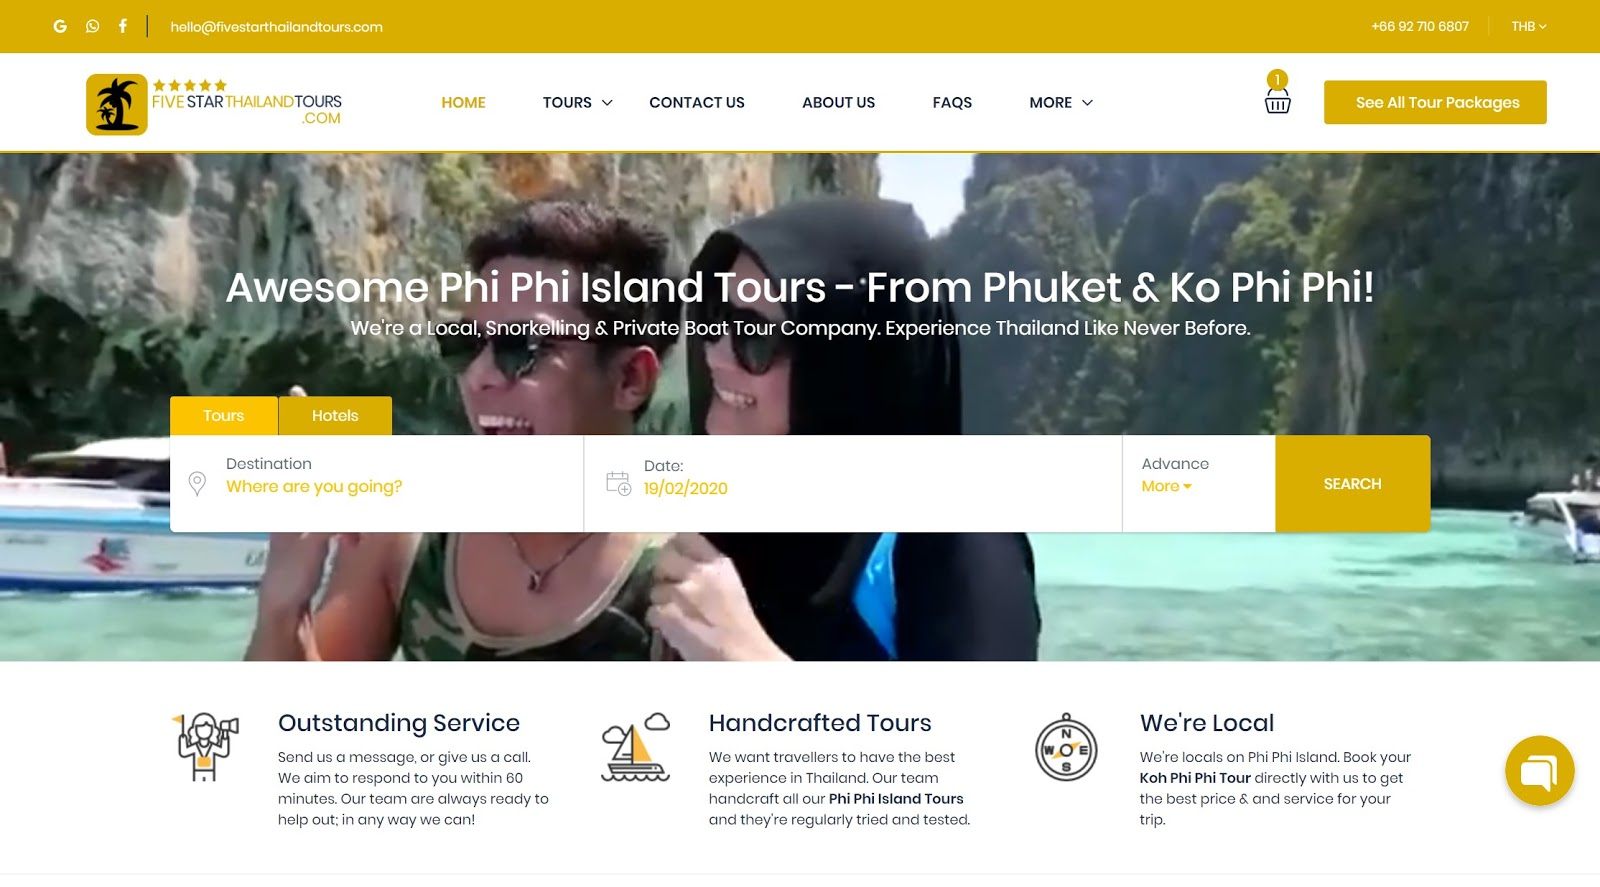 Five Star Thailand - Phi Phi Island Tour